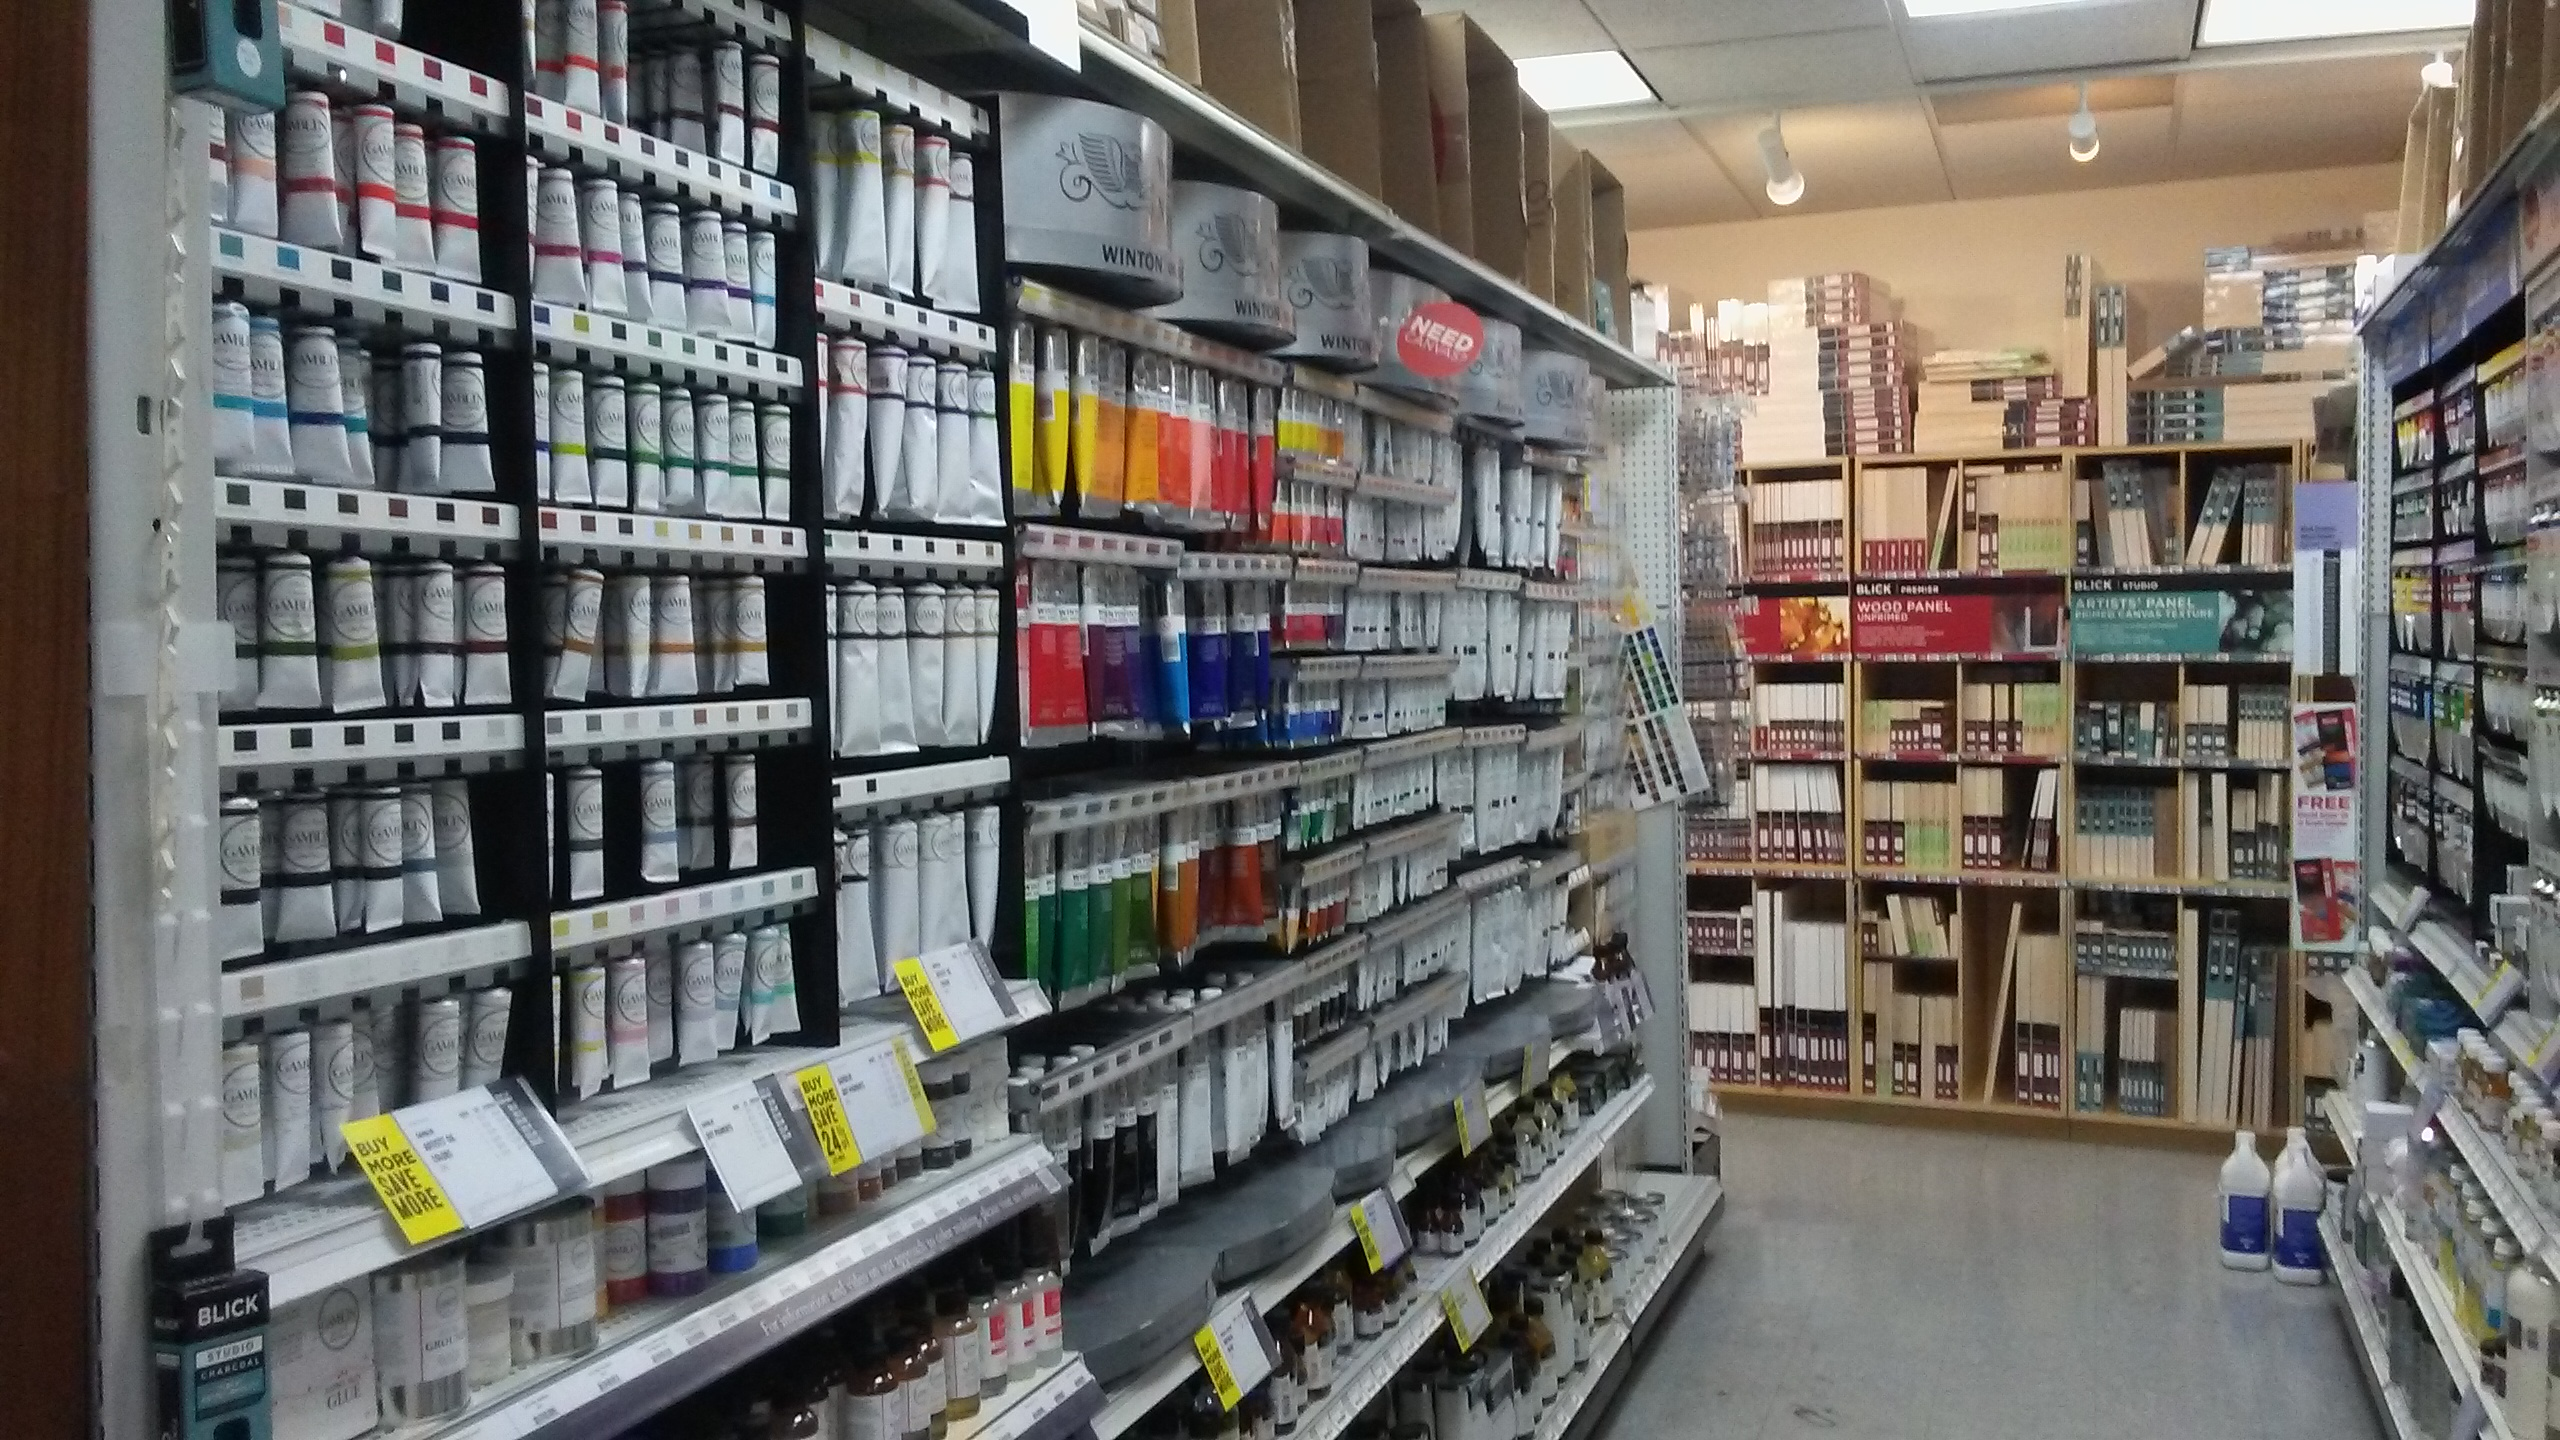 Paint aisle in Dick Blick DC